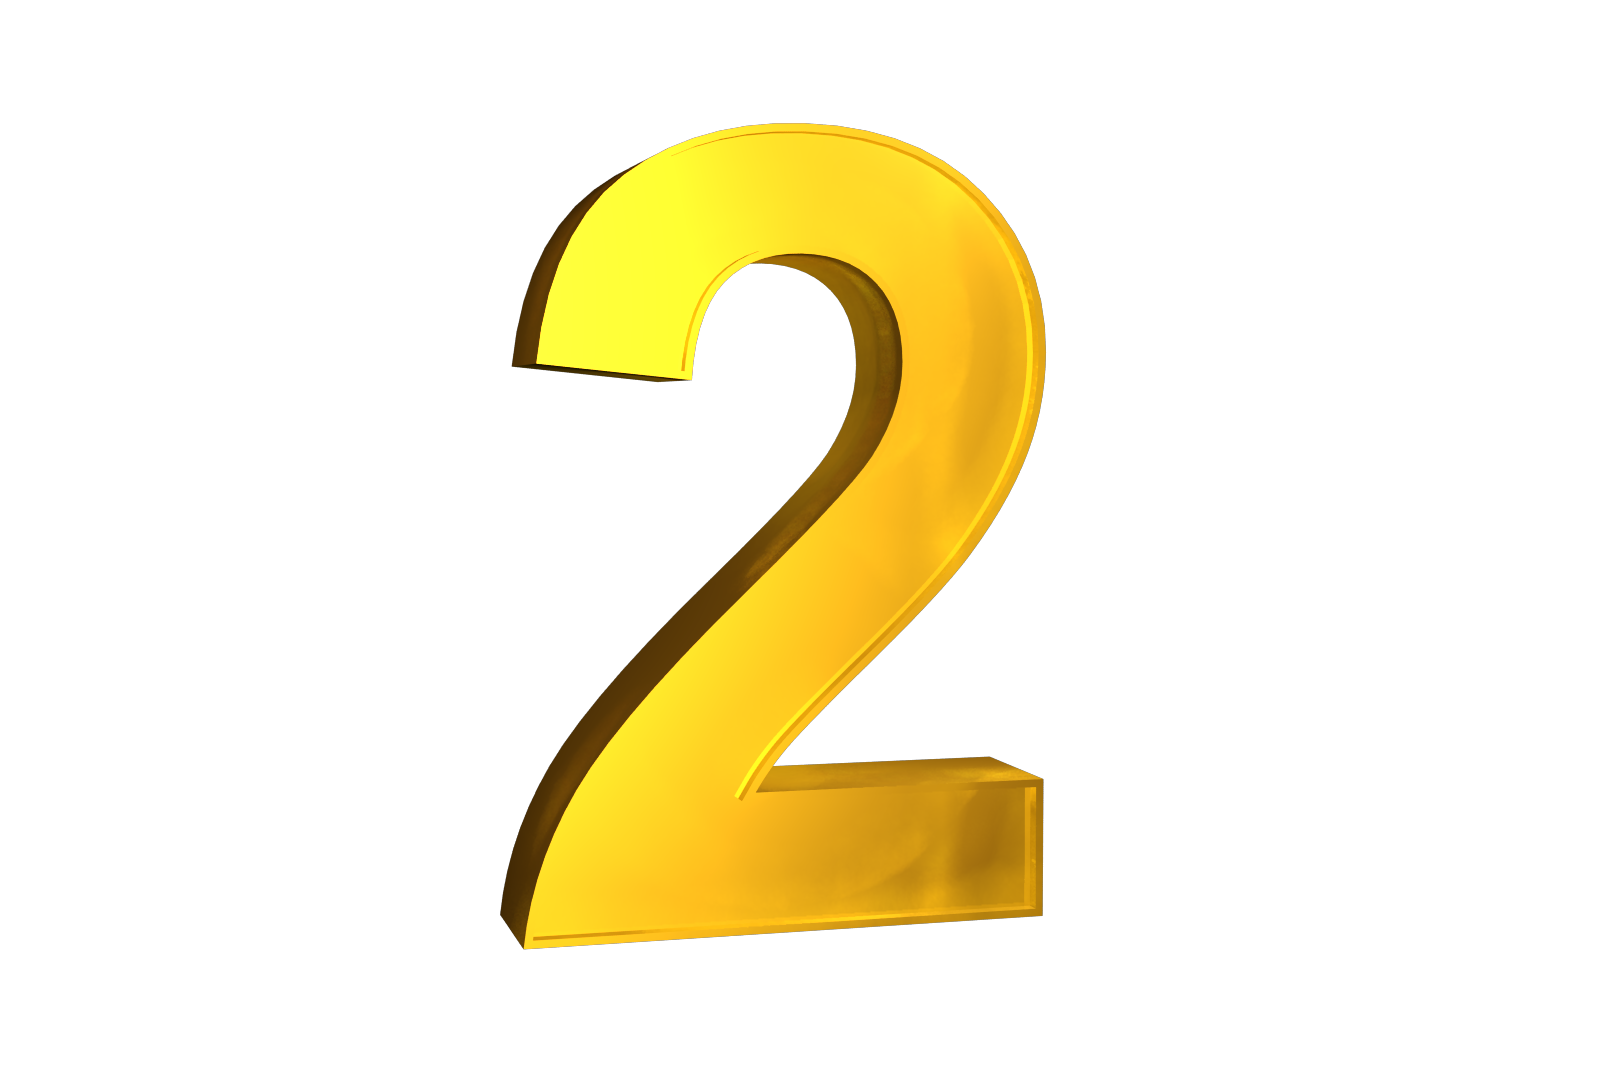 Numbers png images. Number free download